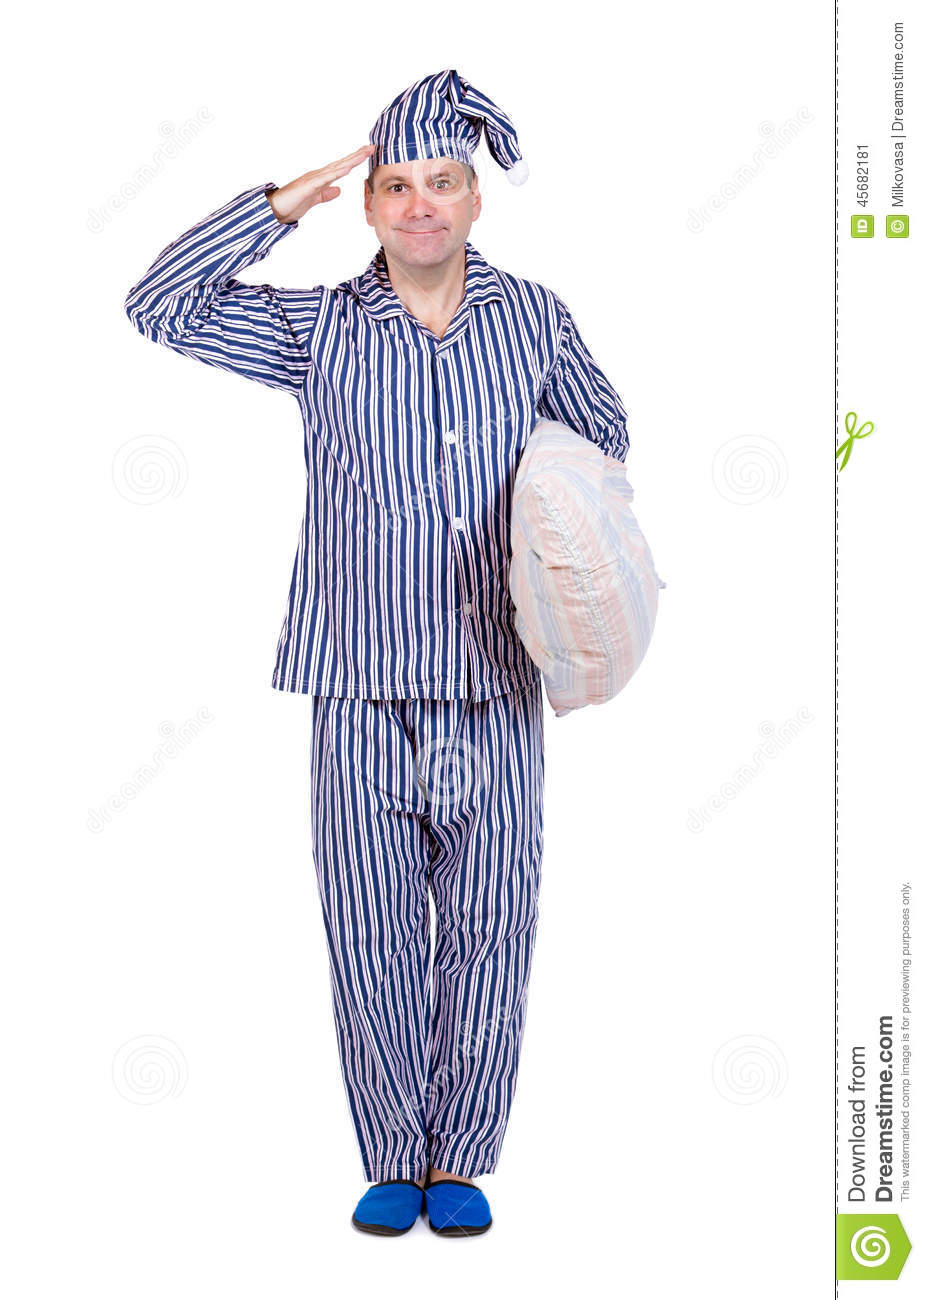 Characteristics Minimalism moreover 1113874 also 1145968 together with Stock Photo Man Pajamas Salutes Pillow White Background Image45682181 as well The Future Kids School Hyderabad B C Sudhir Reddy Kruthica. on gesture studio